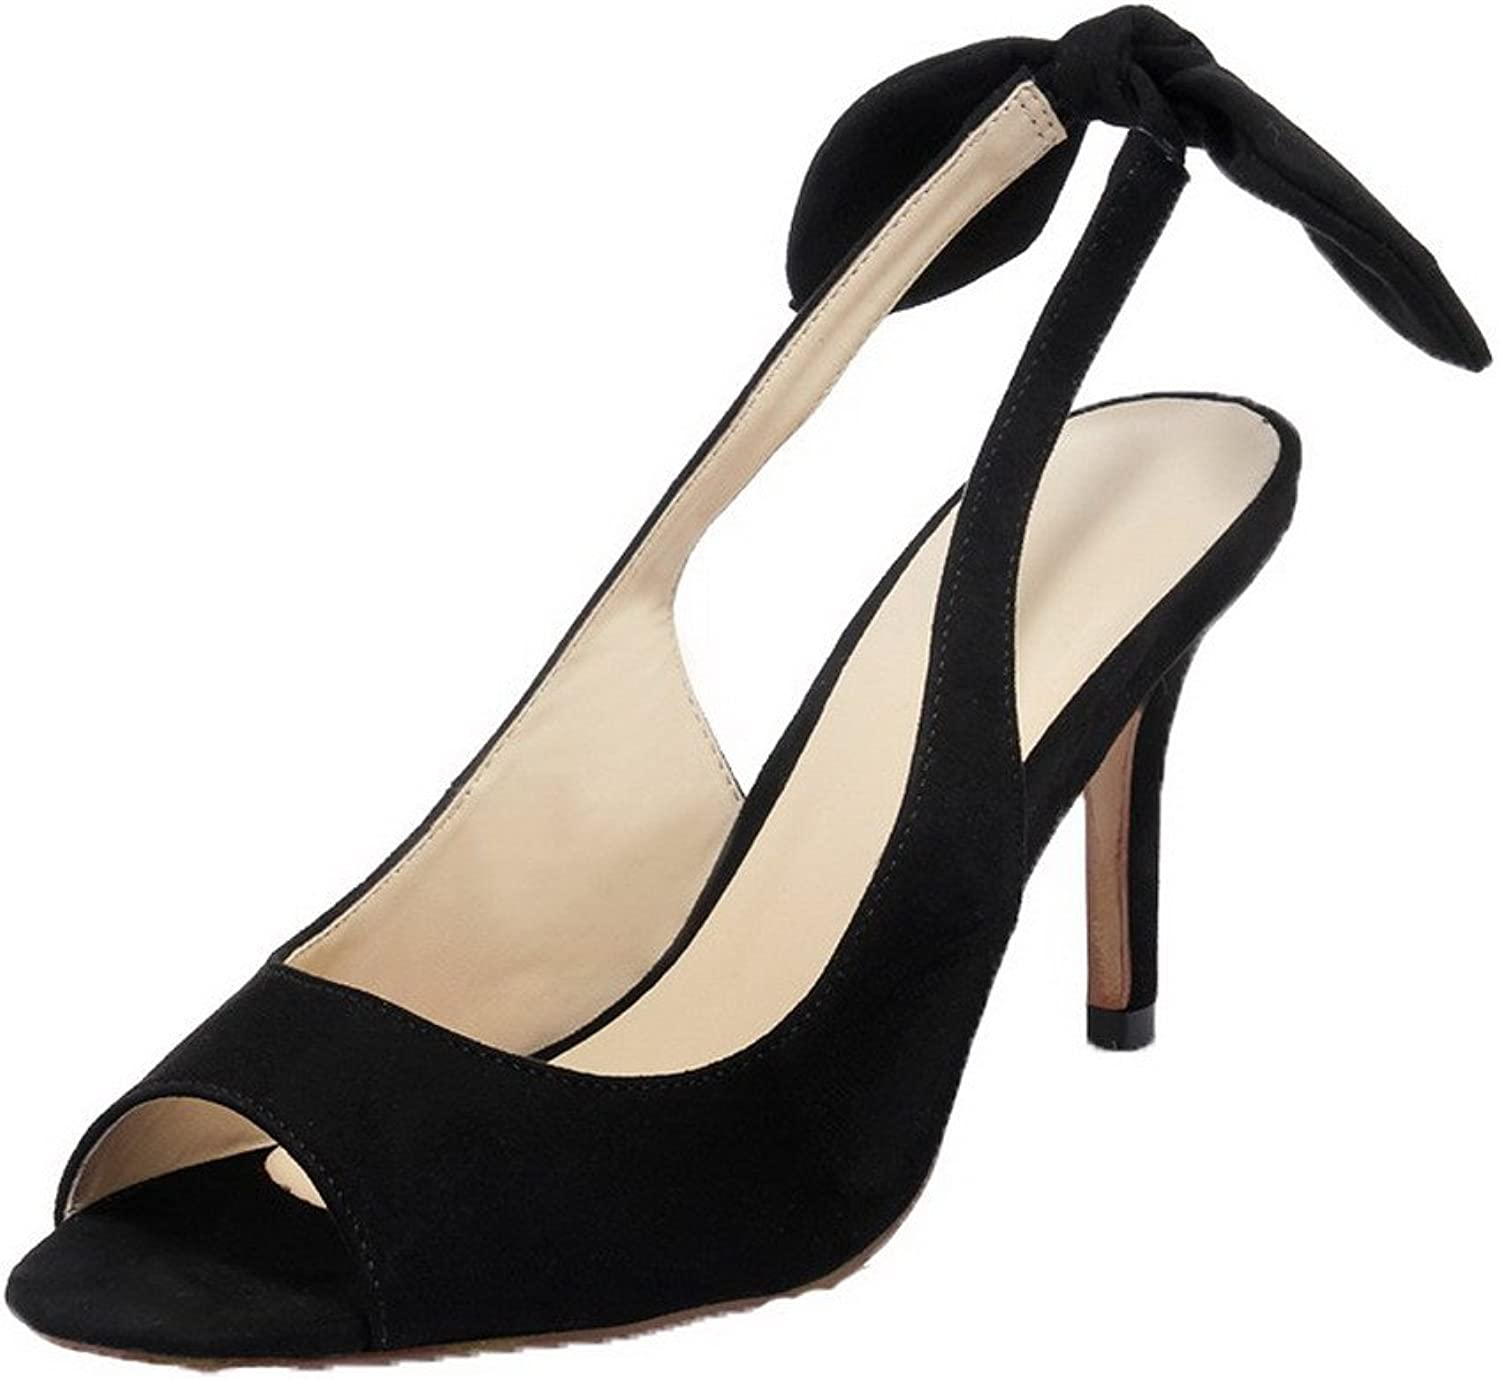 AllhqFashion Women's Frosted Buckle Open Toe High Heels Solid Sandals, Black, 39